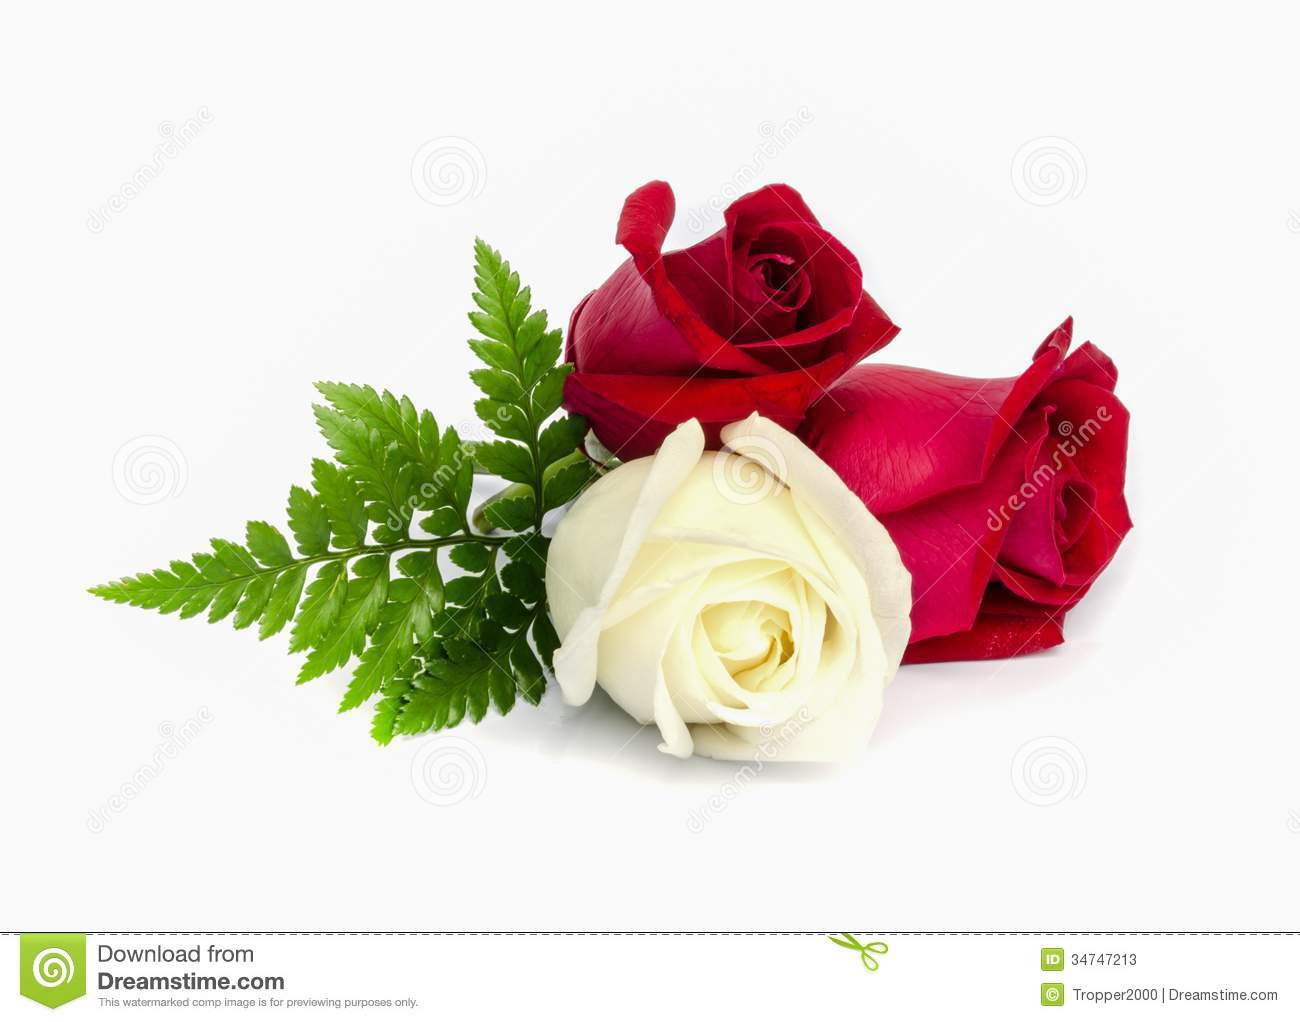 Beautiful red and white rose on white background